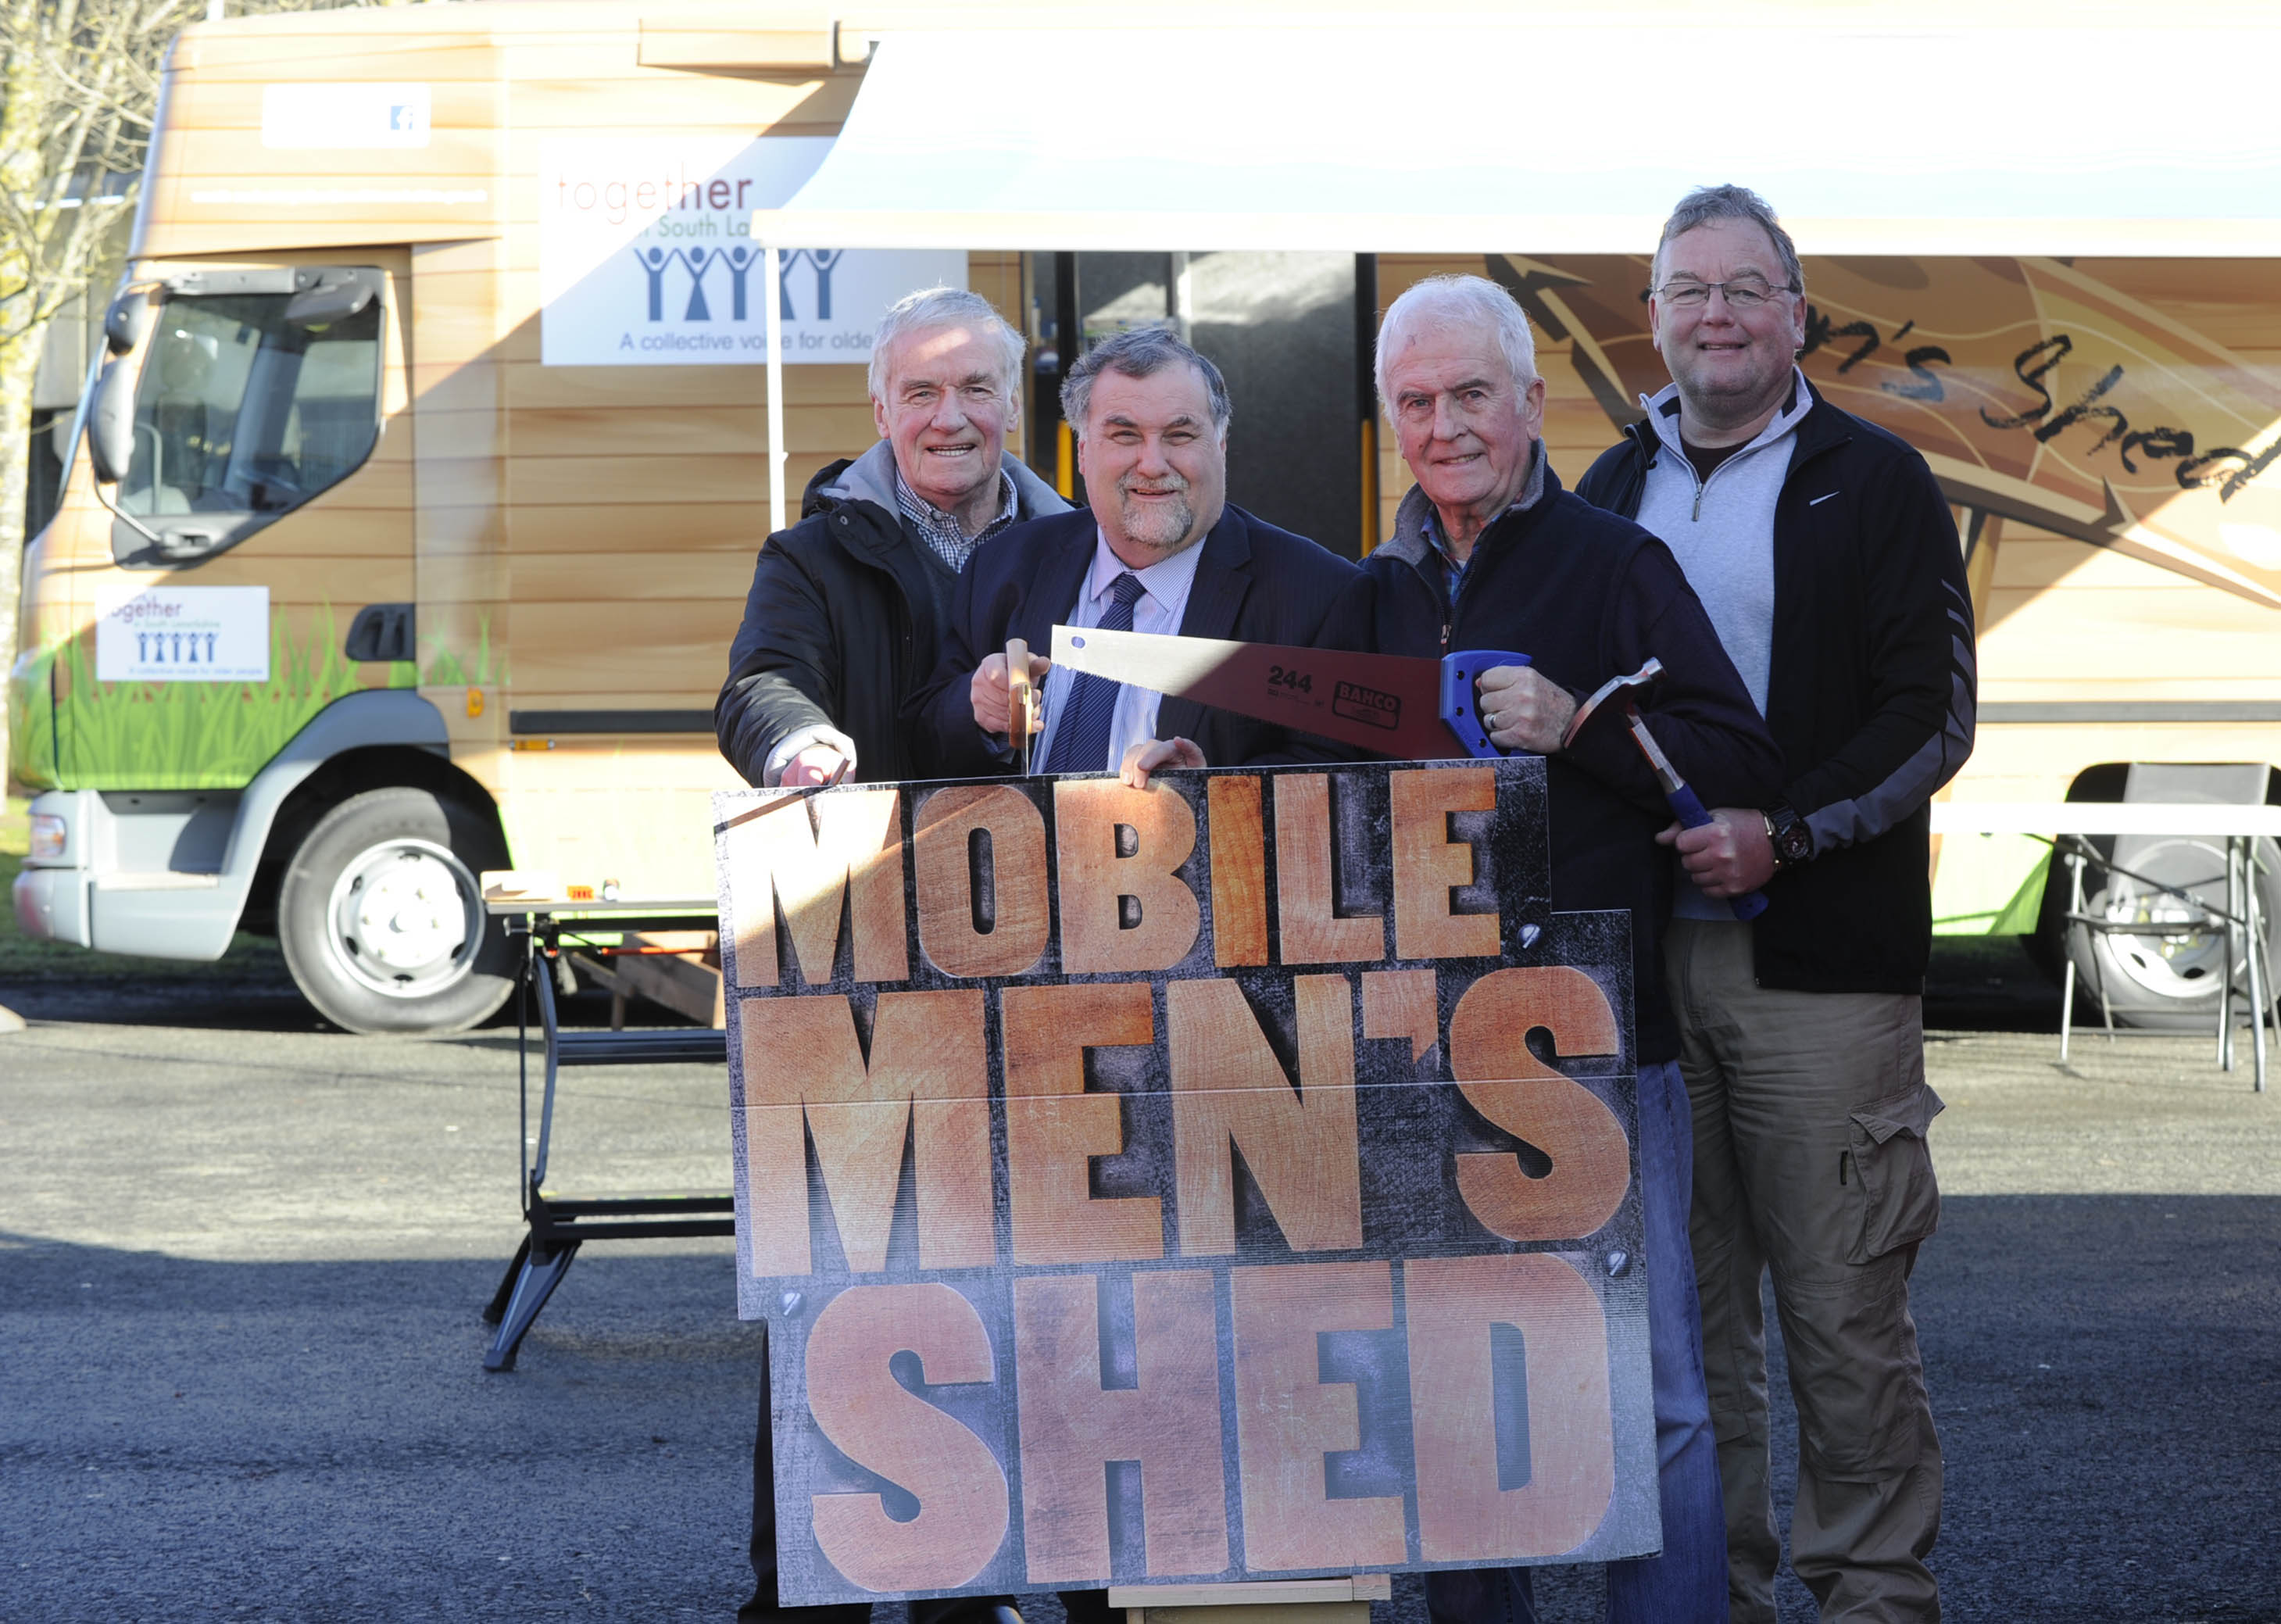 Mobile Mens Shed takes to the road